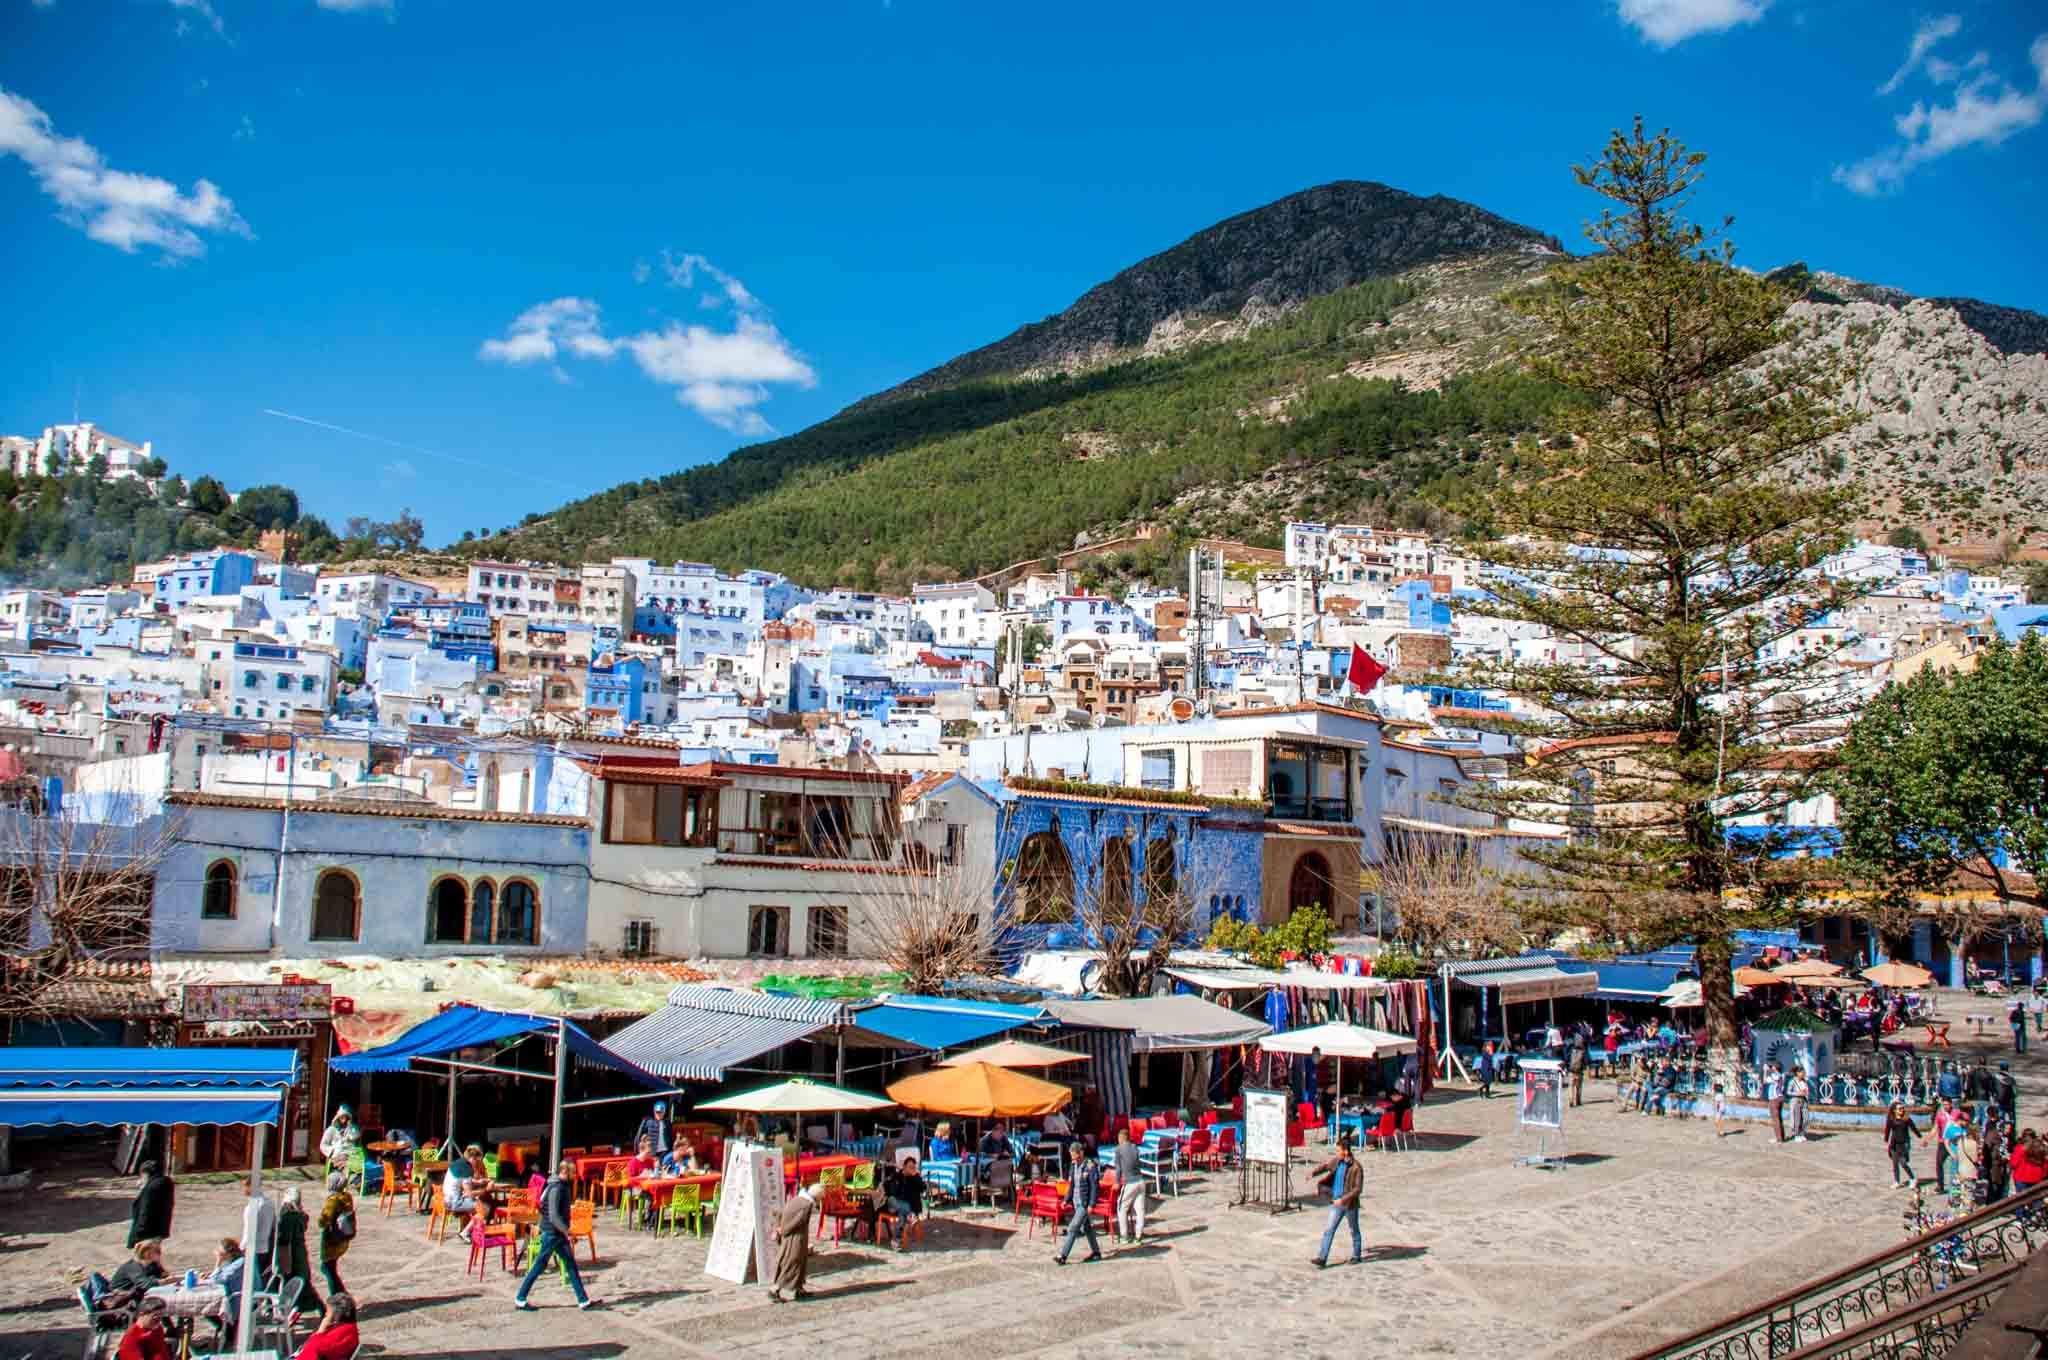 Women traveling to Morocco solo may feel most comfortable in a smaller city like gorgeous, blue Chefchaouen